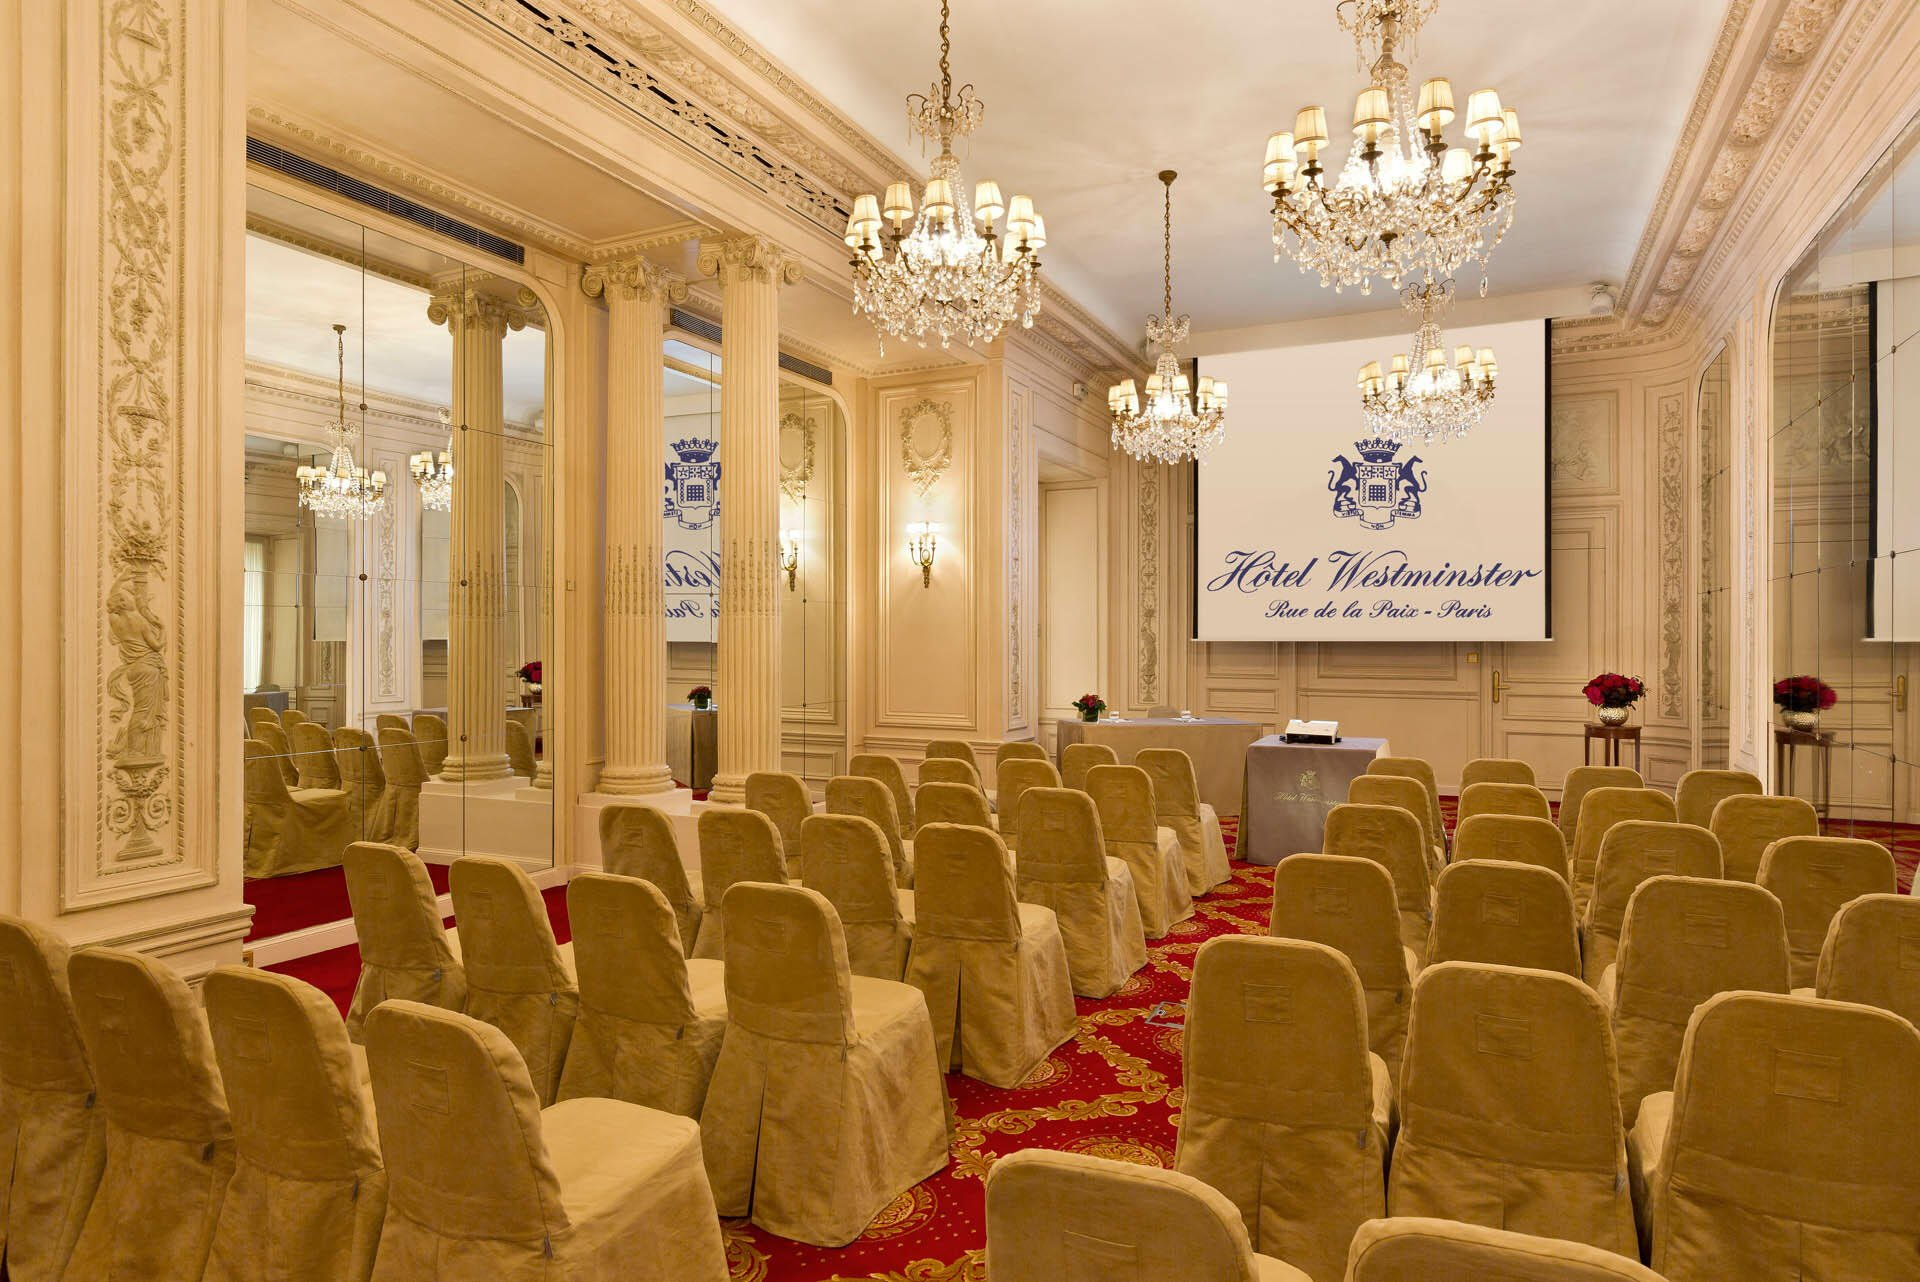 Meeting Room Récamier at Hotel Westminster